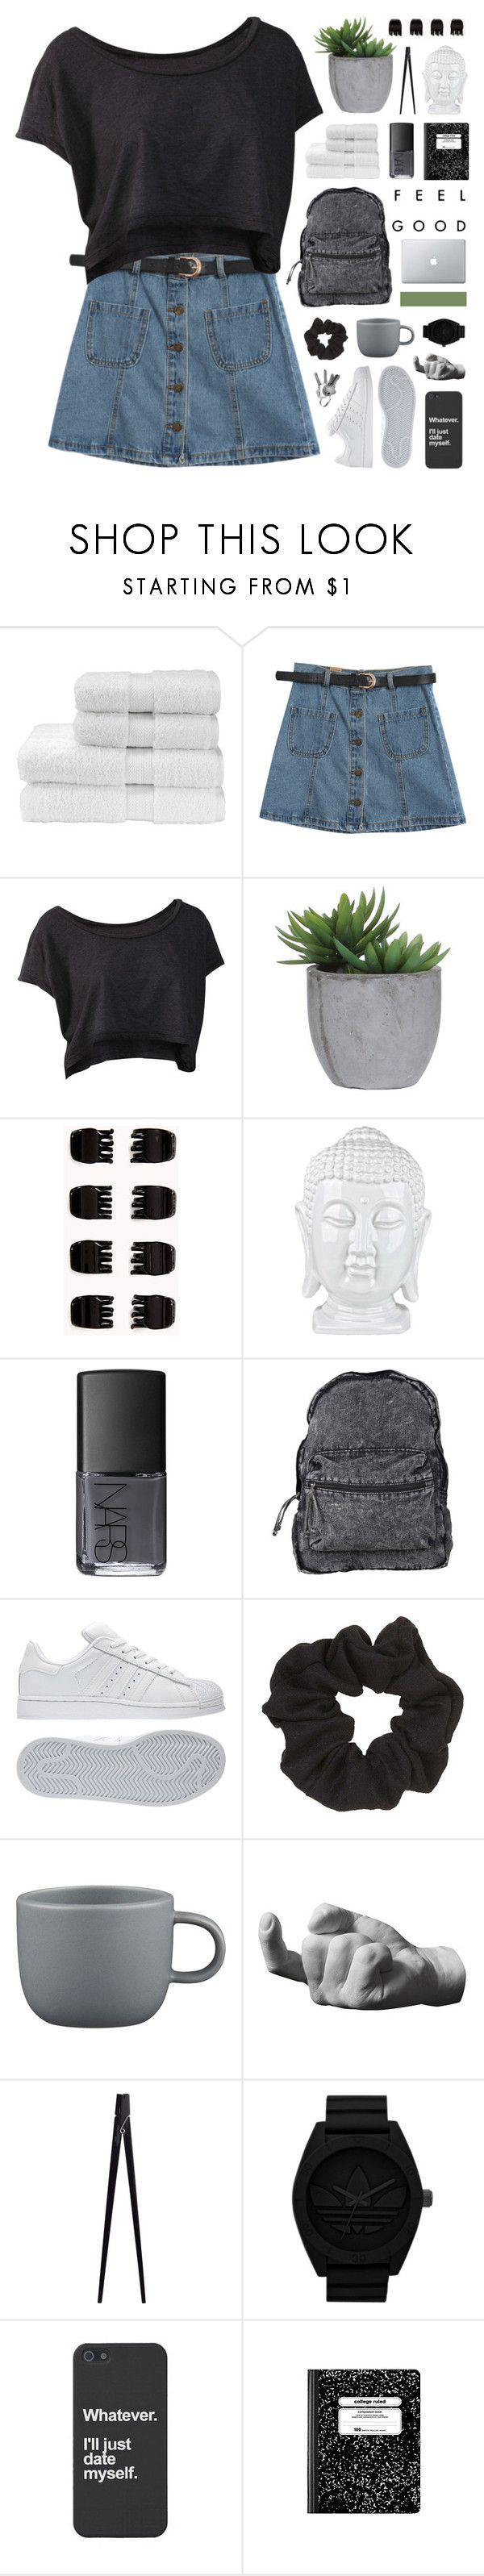 """""""THE FEELING"""" by hhuricane ❤ liked on Polyvore featuring Christy, Chicnova Fashion, Lux-Art Silks, Forever 21, NARS Cosmetics, Agent Ninetynine, adidas, Topshop, CB2 and Harry Allen"""